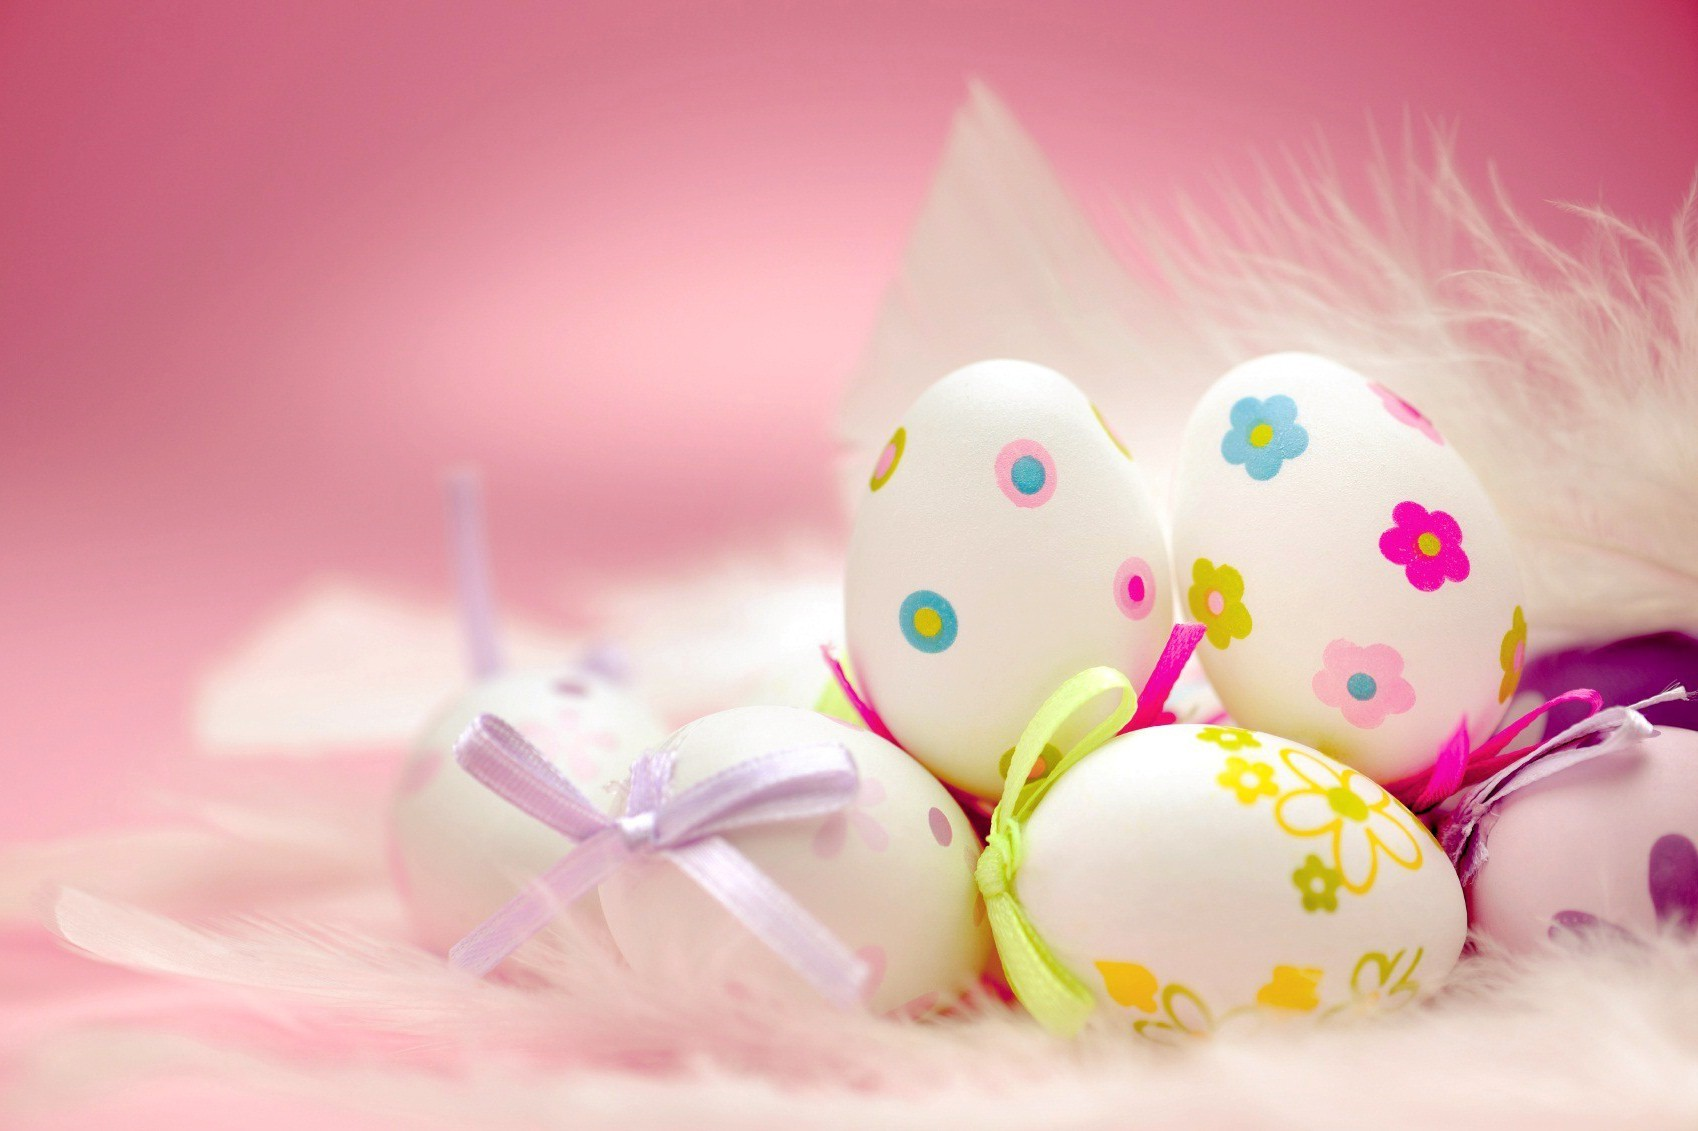 Colorful Easter Eggs 2016 Images   New HD Wallpapers 1698x1131